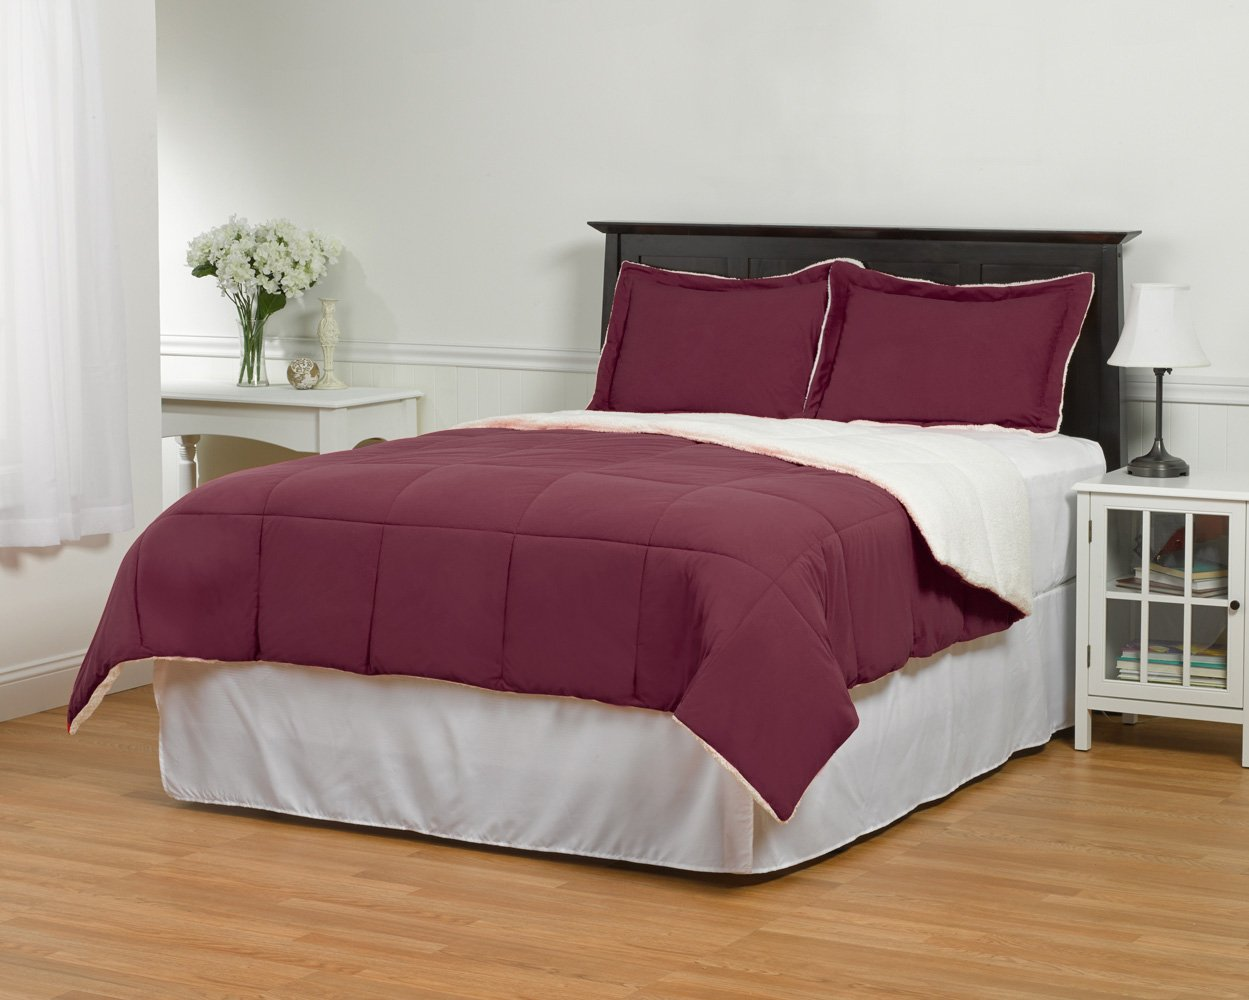 Reversible 2 Piece Sherpa Comforter Set